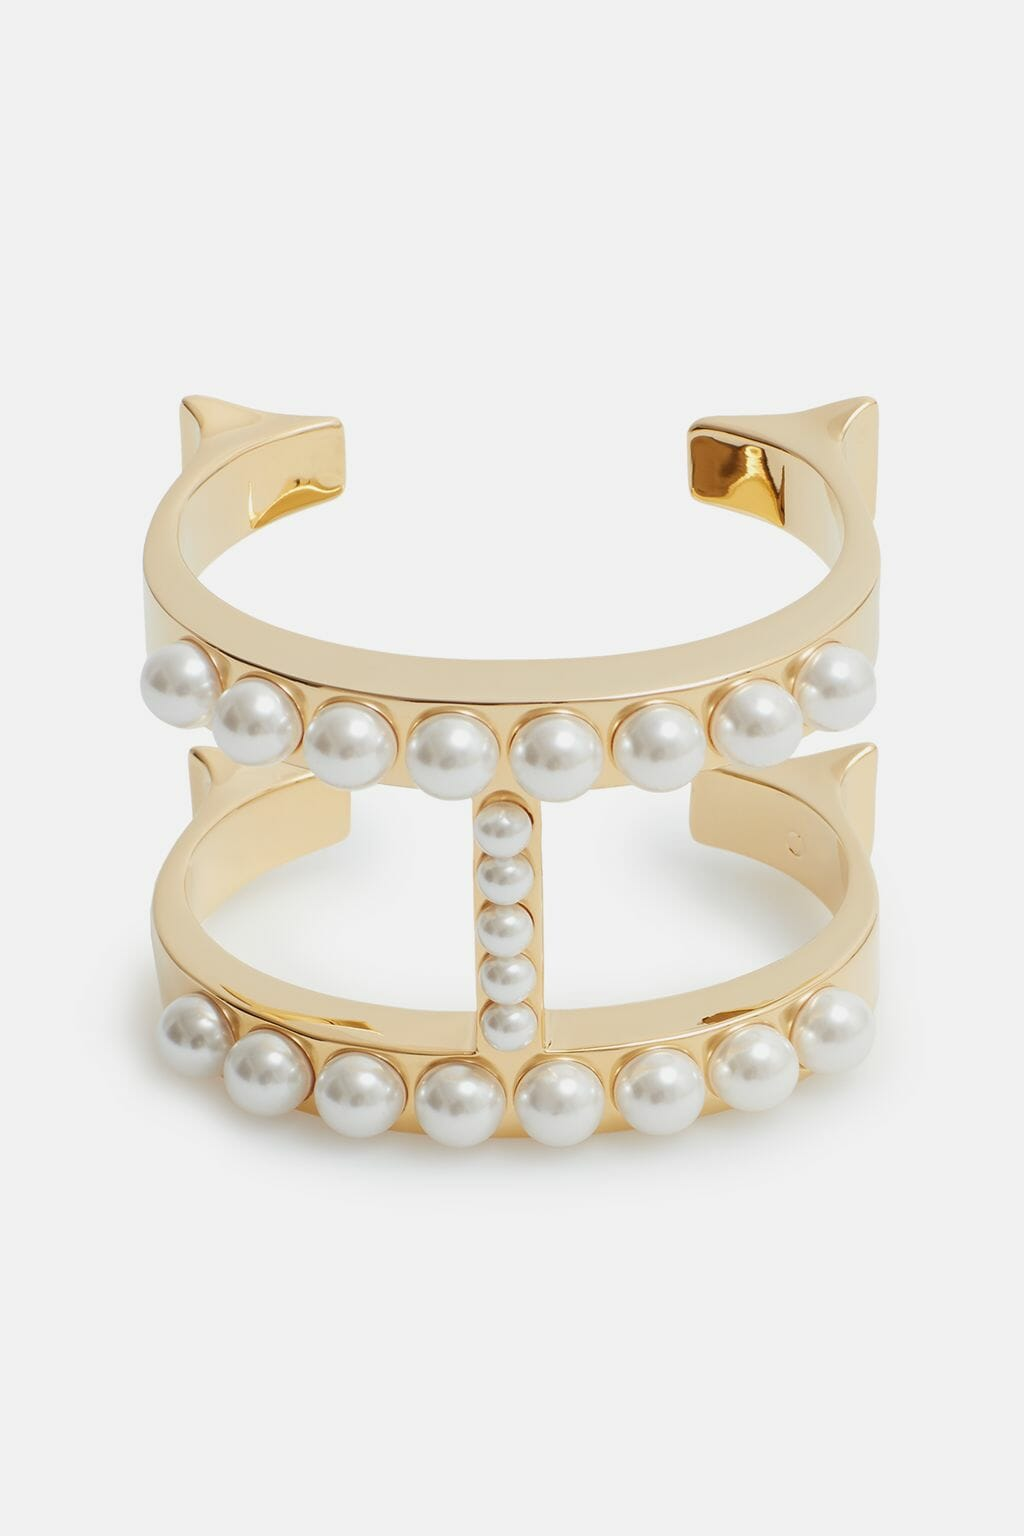 CH-Carolina-herrera-insignia-jewelry-look-13